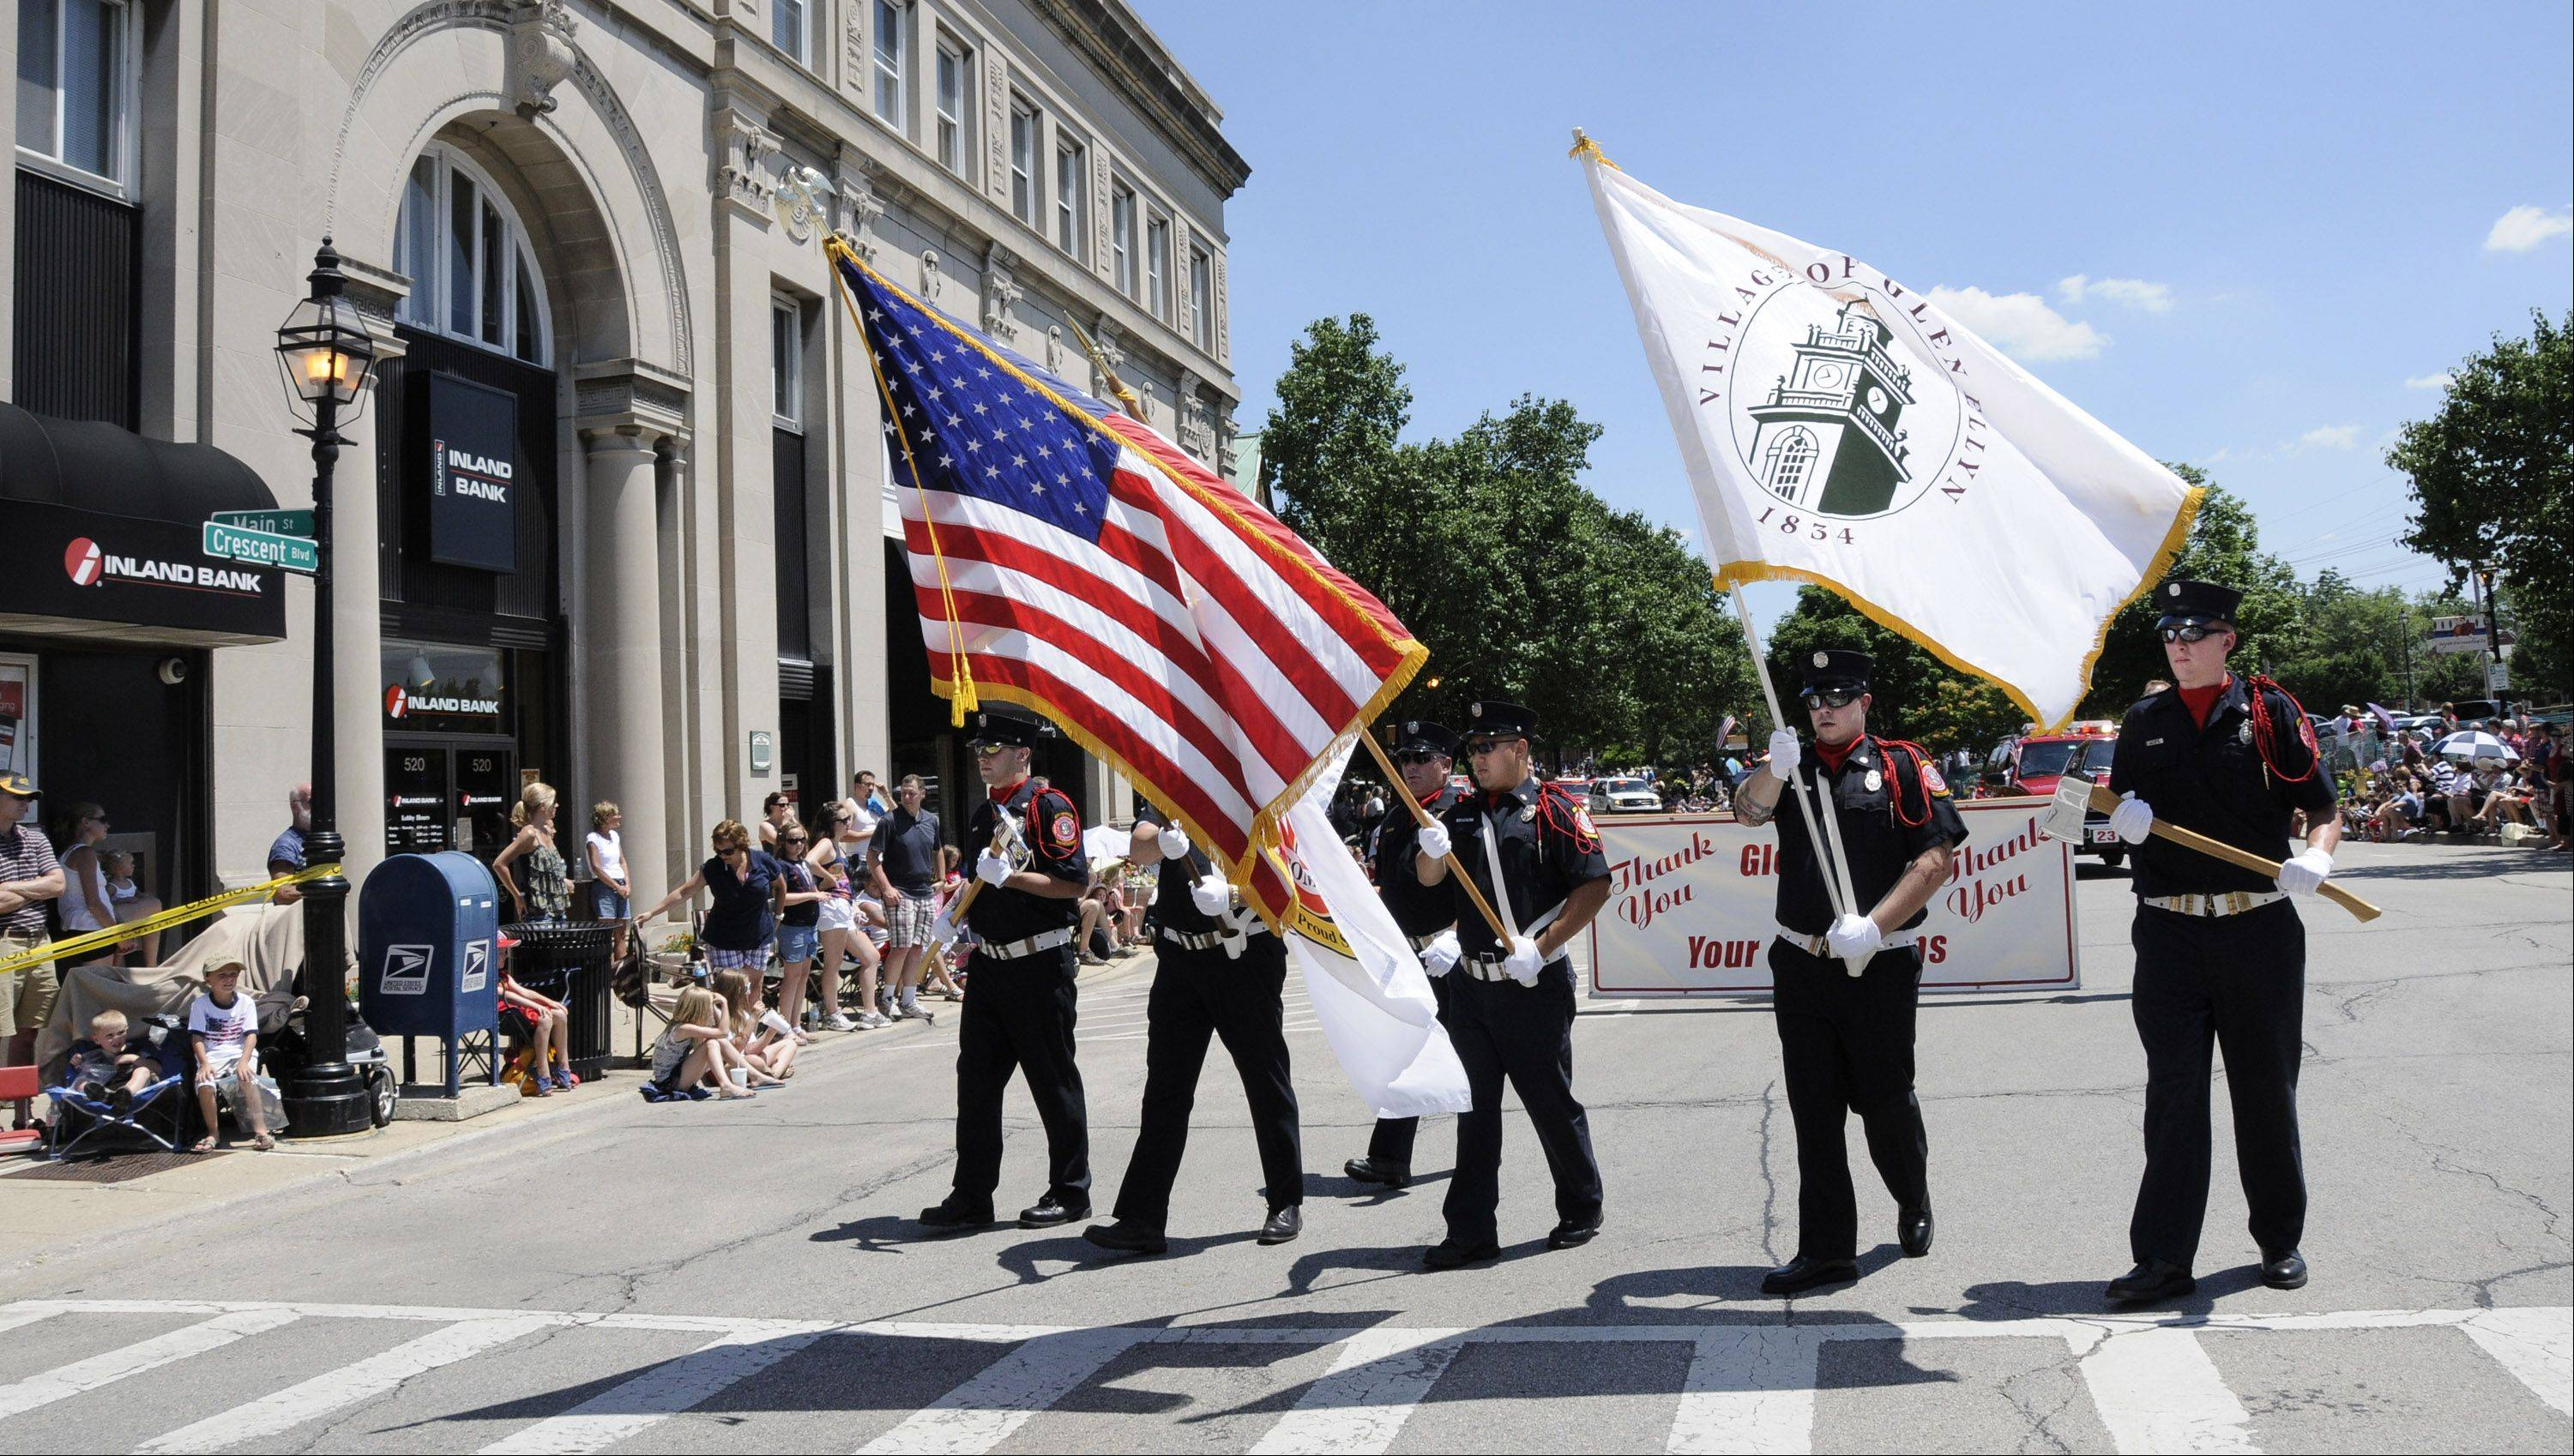 The Glen Ellyn Fire Department's color guard leads Glen Ellyn's Independence Day parade, followed by many of the department's fire engines with sirens blaring.